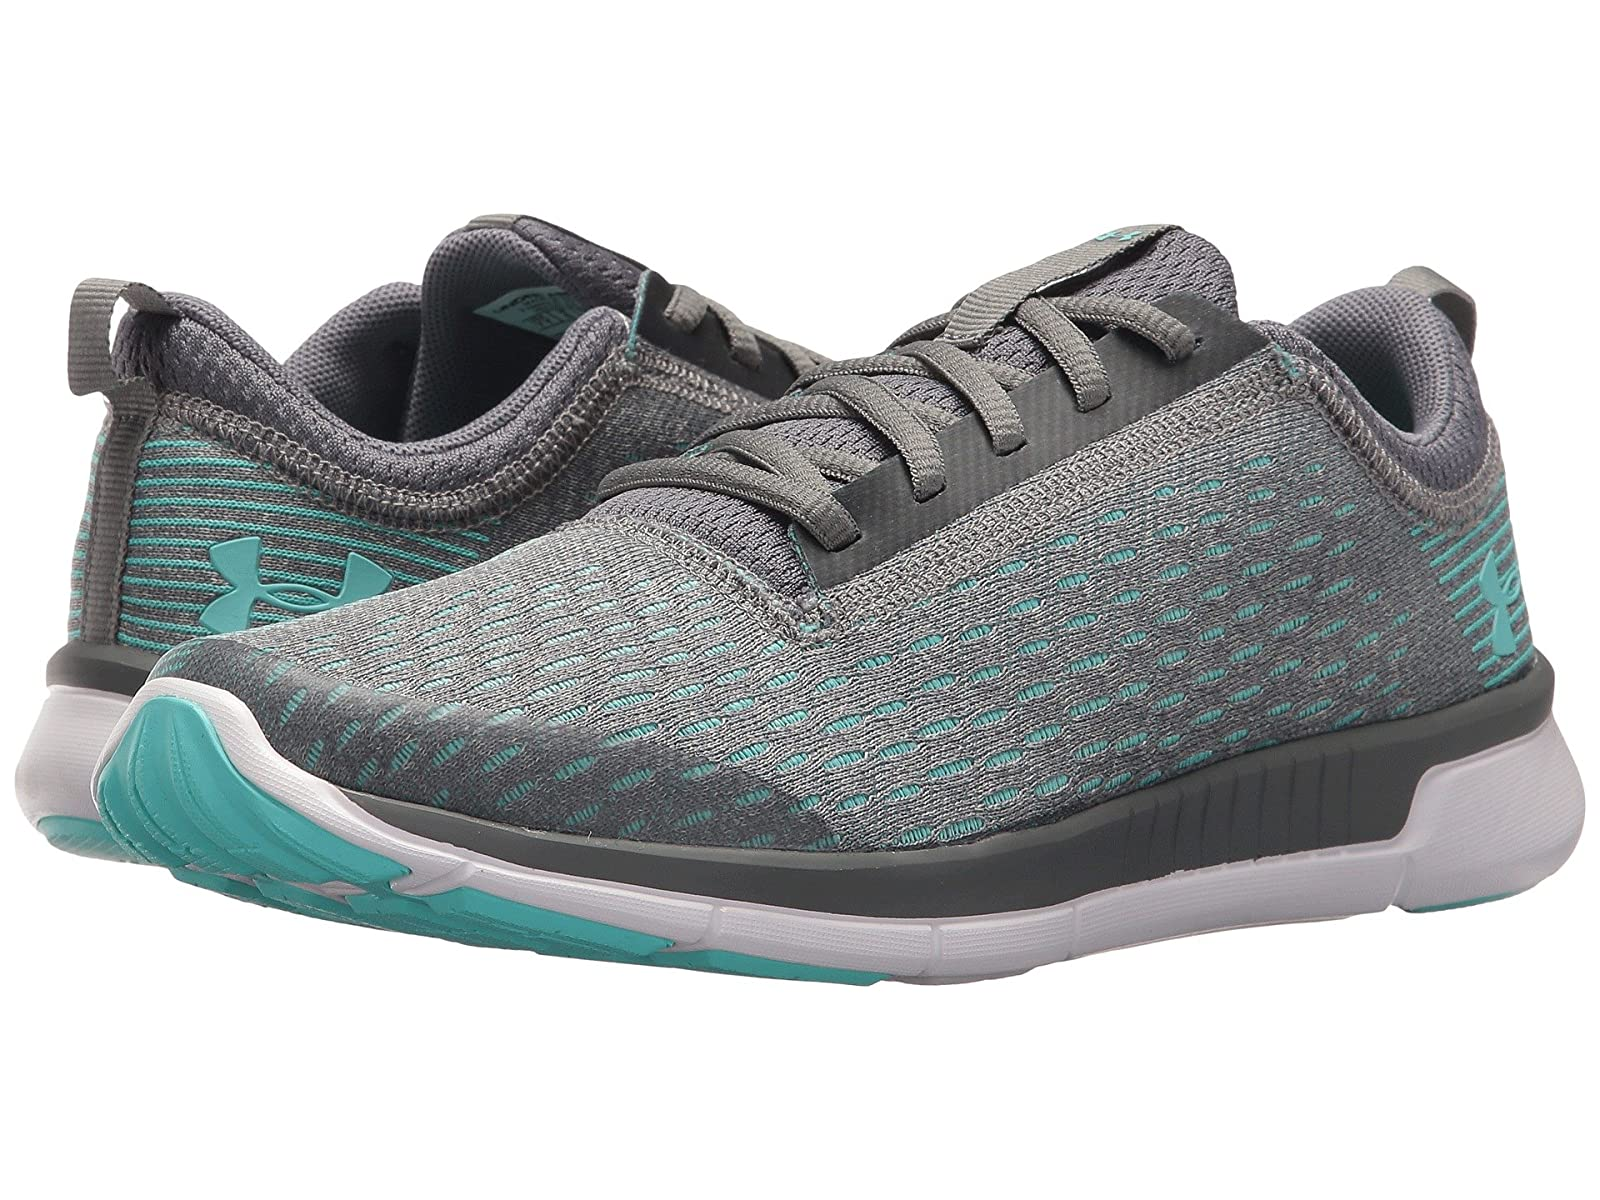 Under Armour Kids UA GGS Lightning 2 (Big Kid)Cheap and distinctive eye-catching shoes